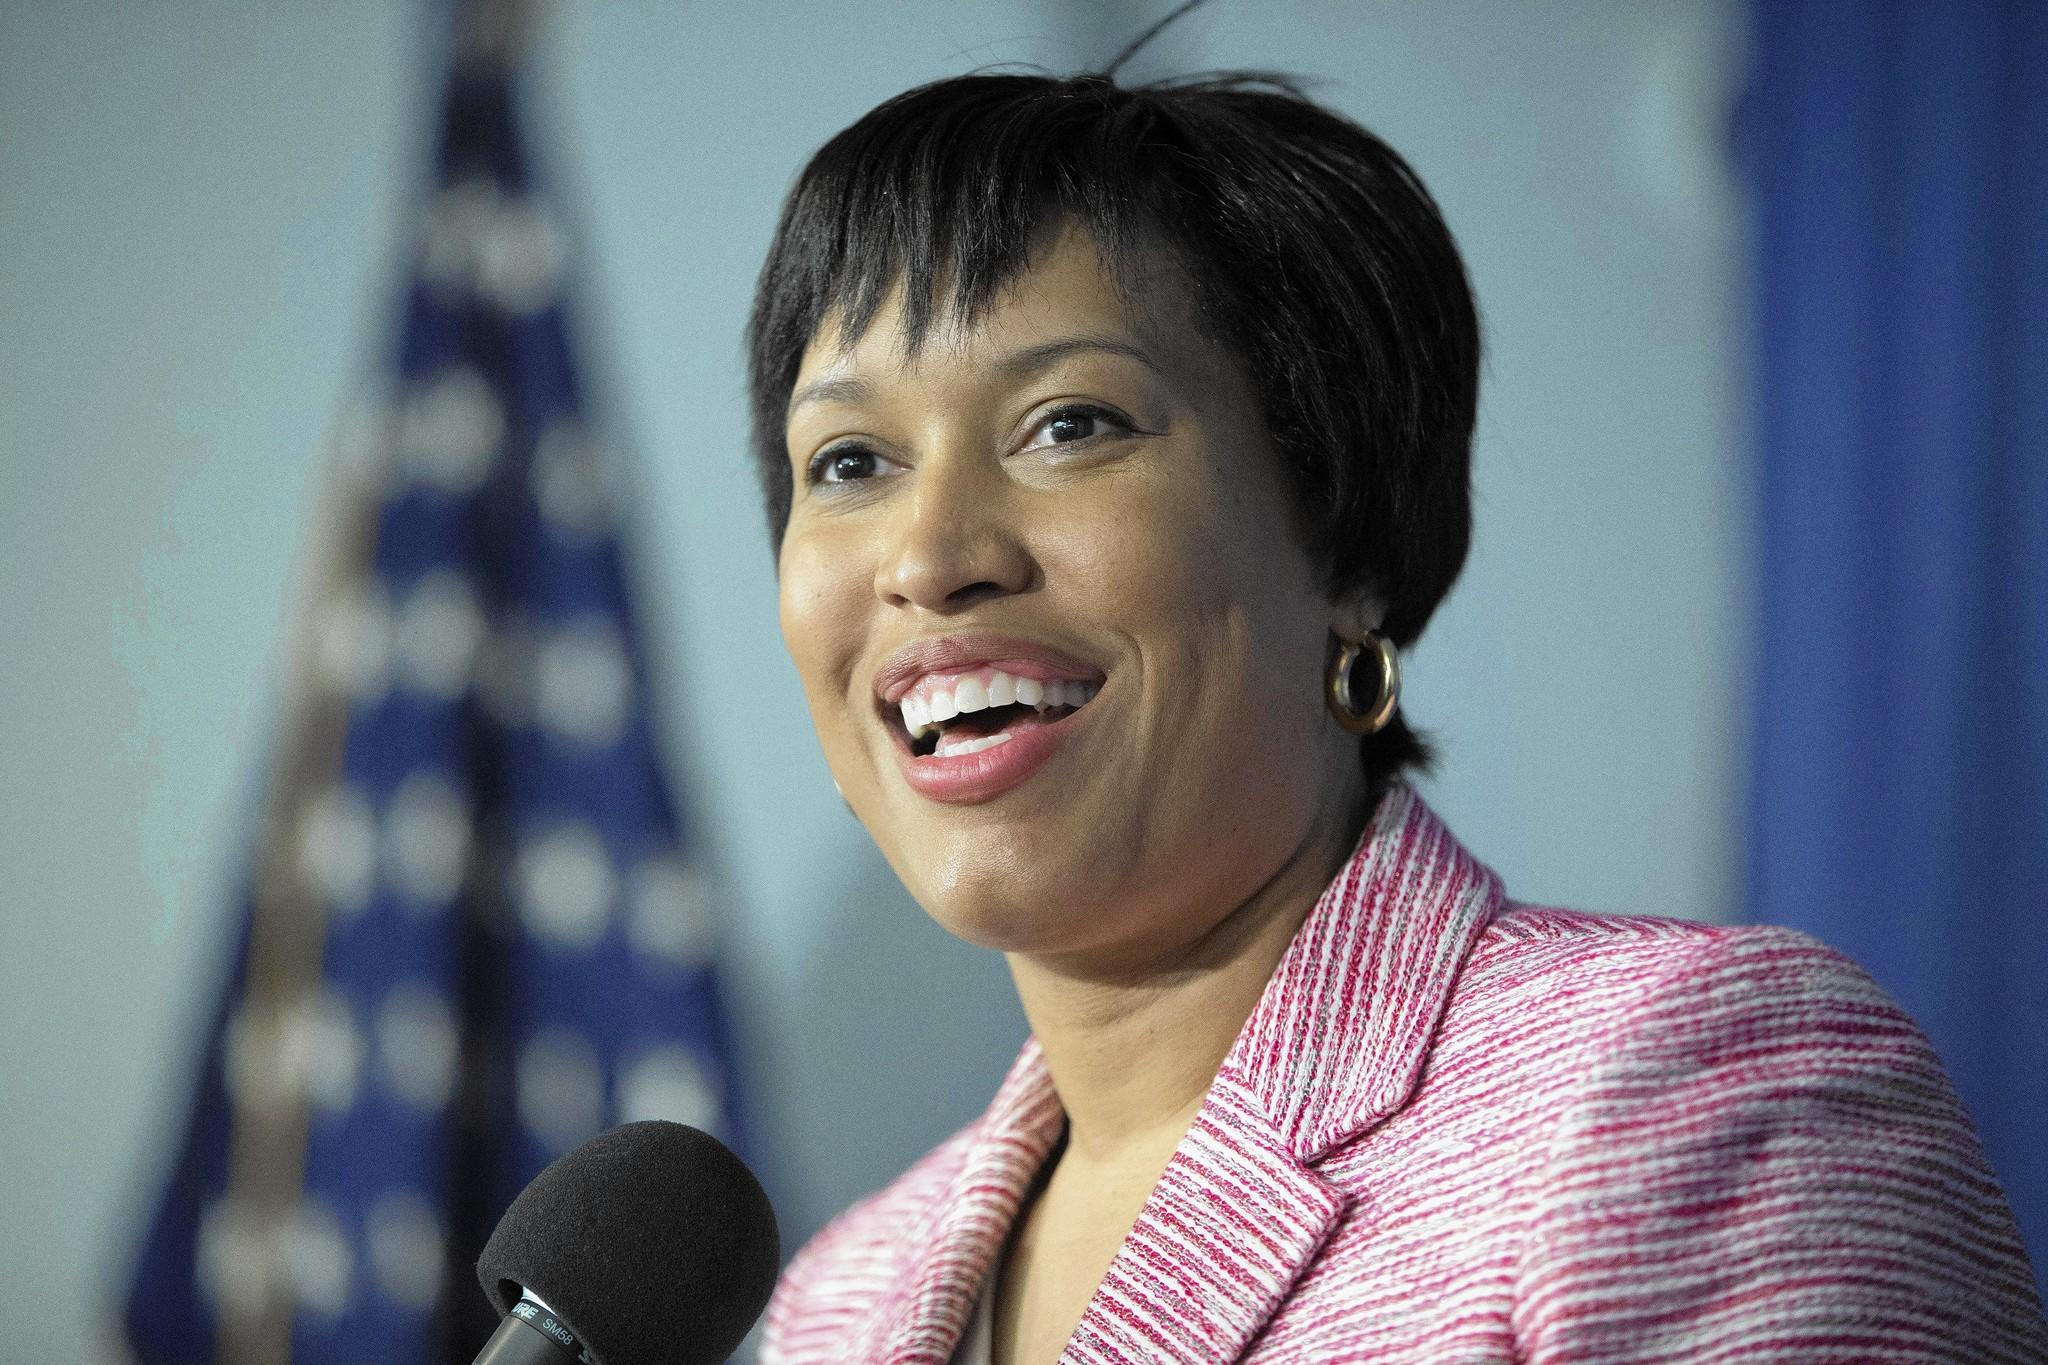 """Corruption in City Hall is unacceptable,"" Muriel Bowser said in her victory speech after beating the scandal-tarnished incumbent mayor of Washington, D.C., in the Democratic primary."